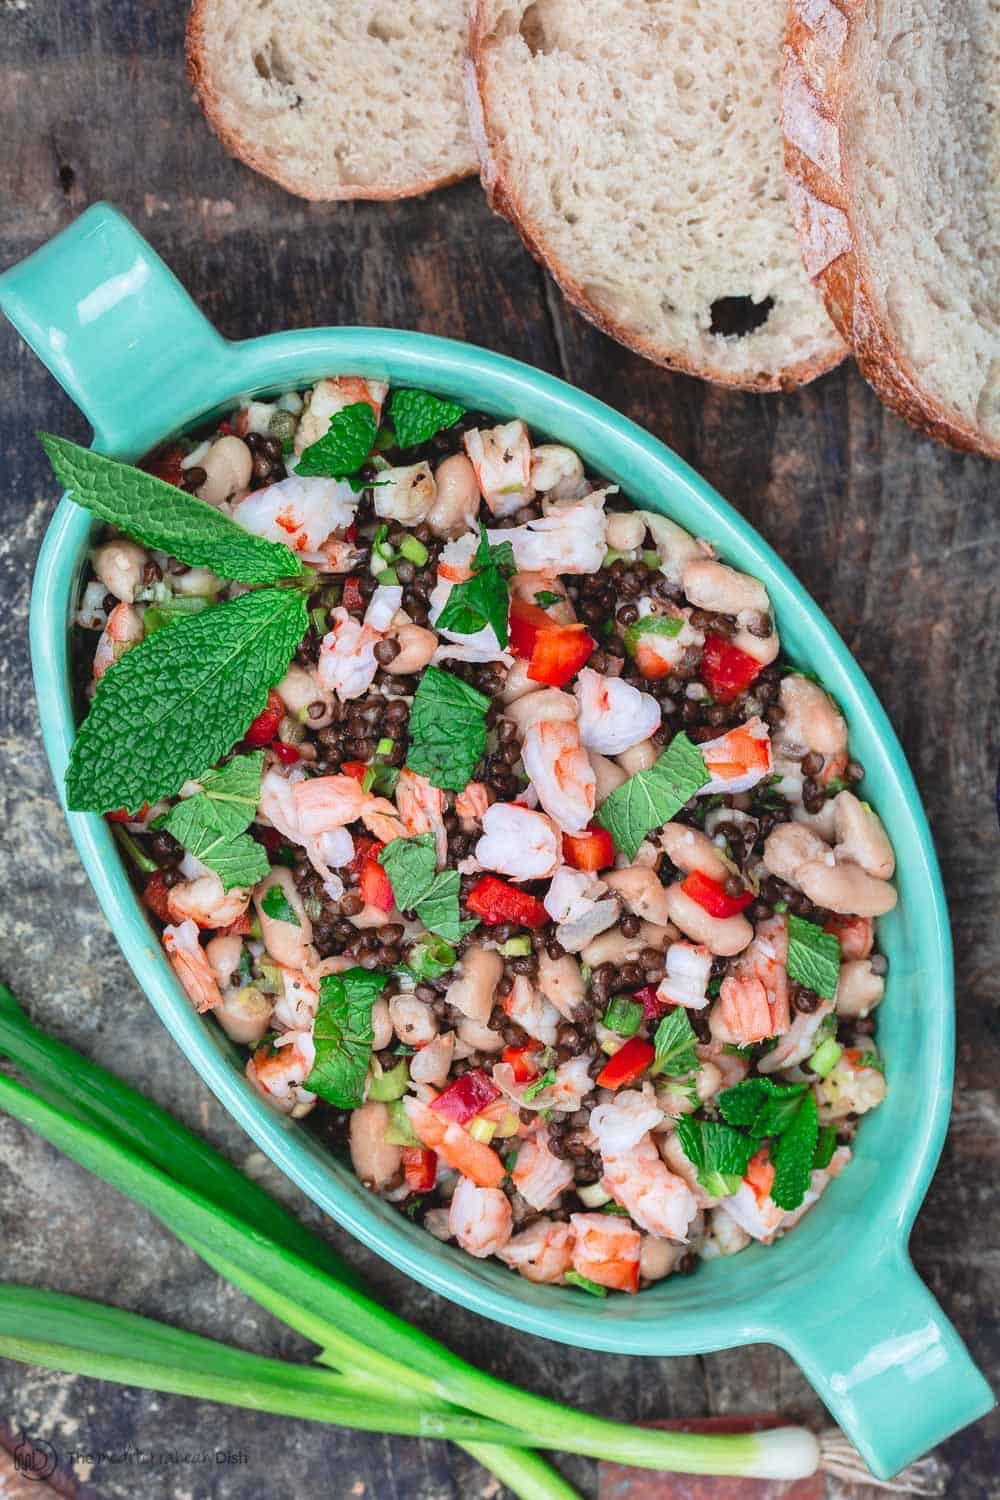 White Bean Salad, Tuscan-Style with shrimp, lentils, fresh mint and red bell peppers. A side of crusty bread slices